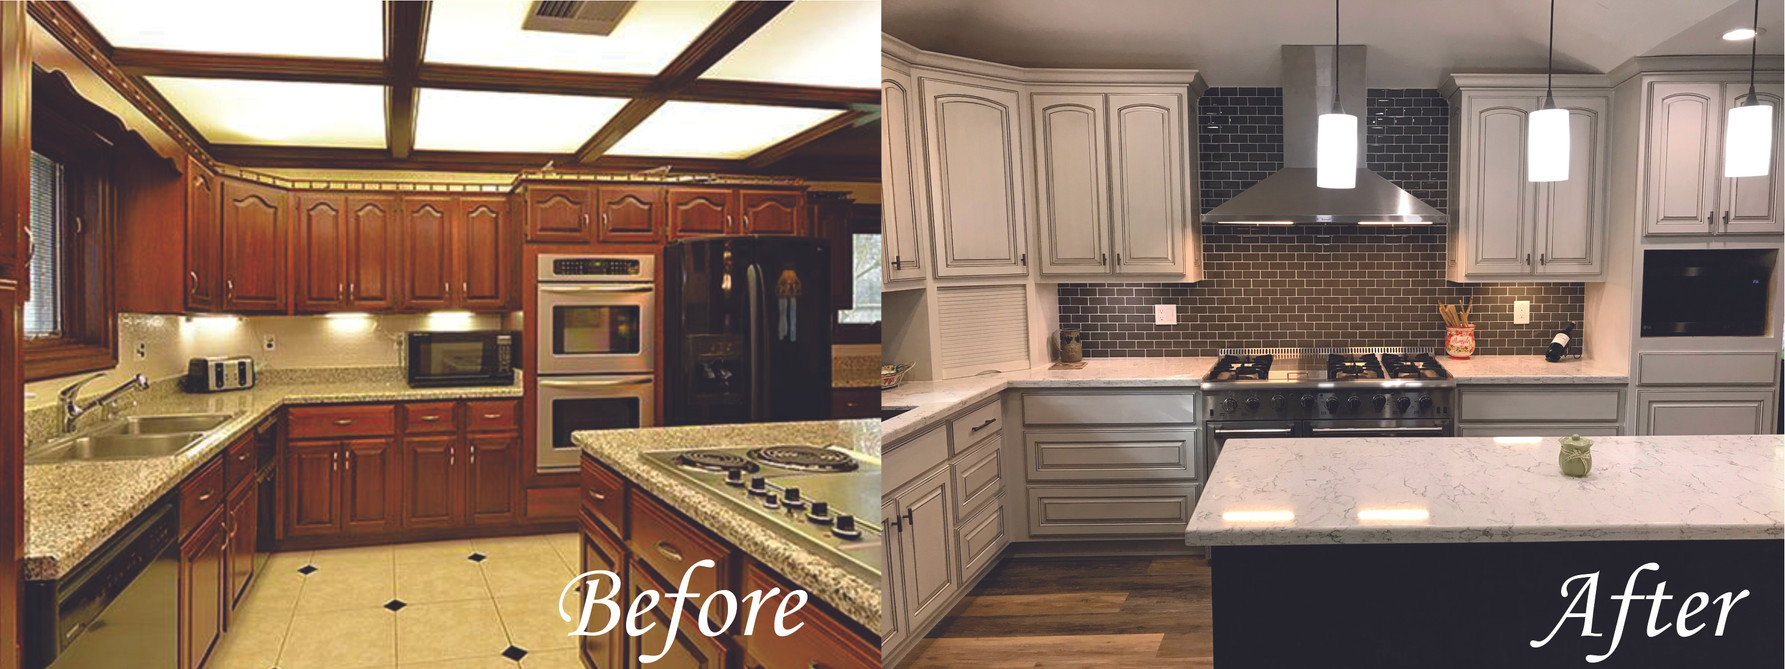 Kitchen side 2 - Before and After